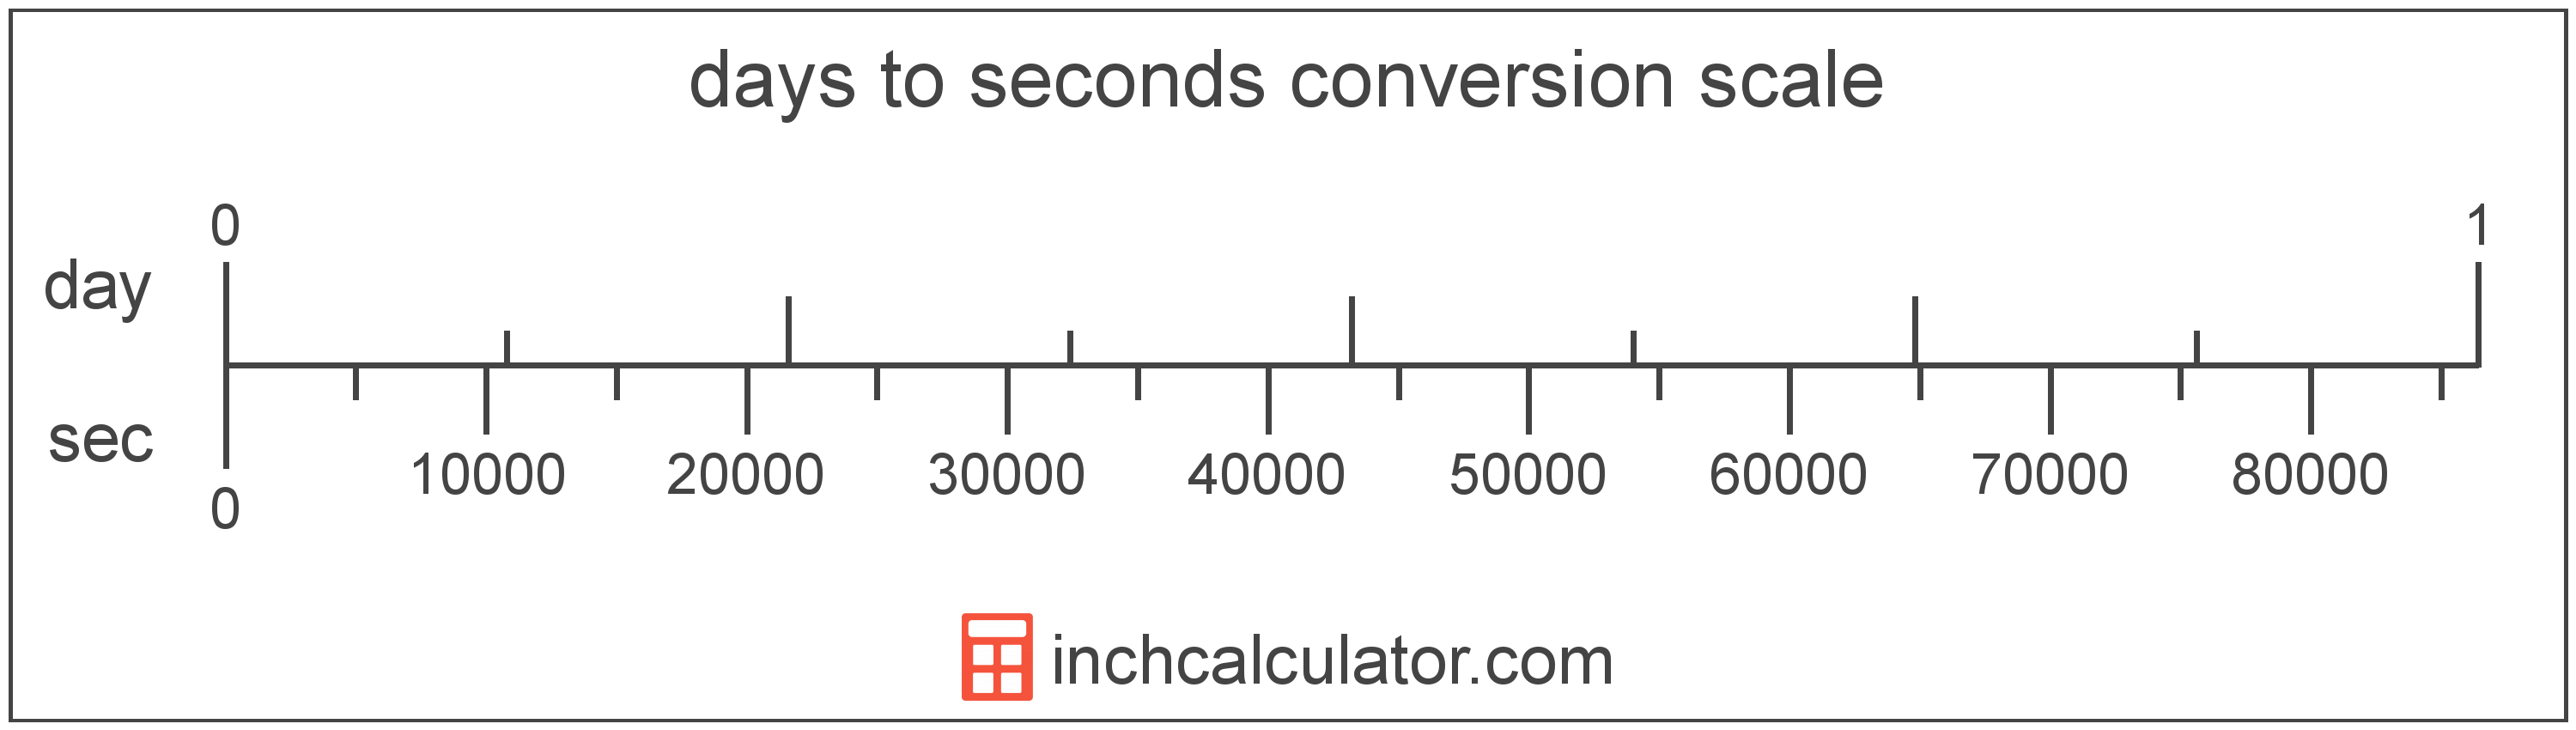 conversion scale showing days and equivalent seconds time values